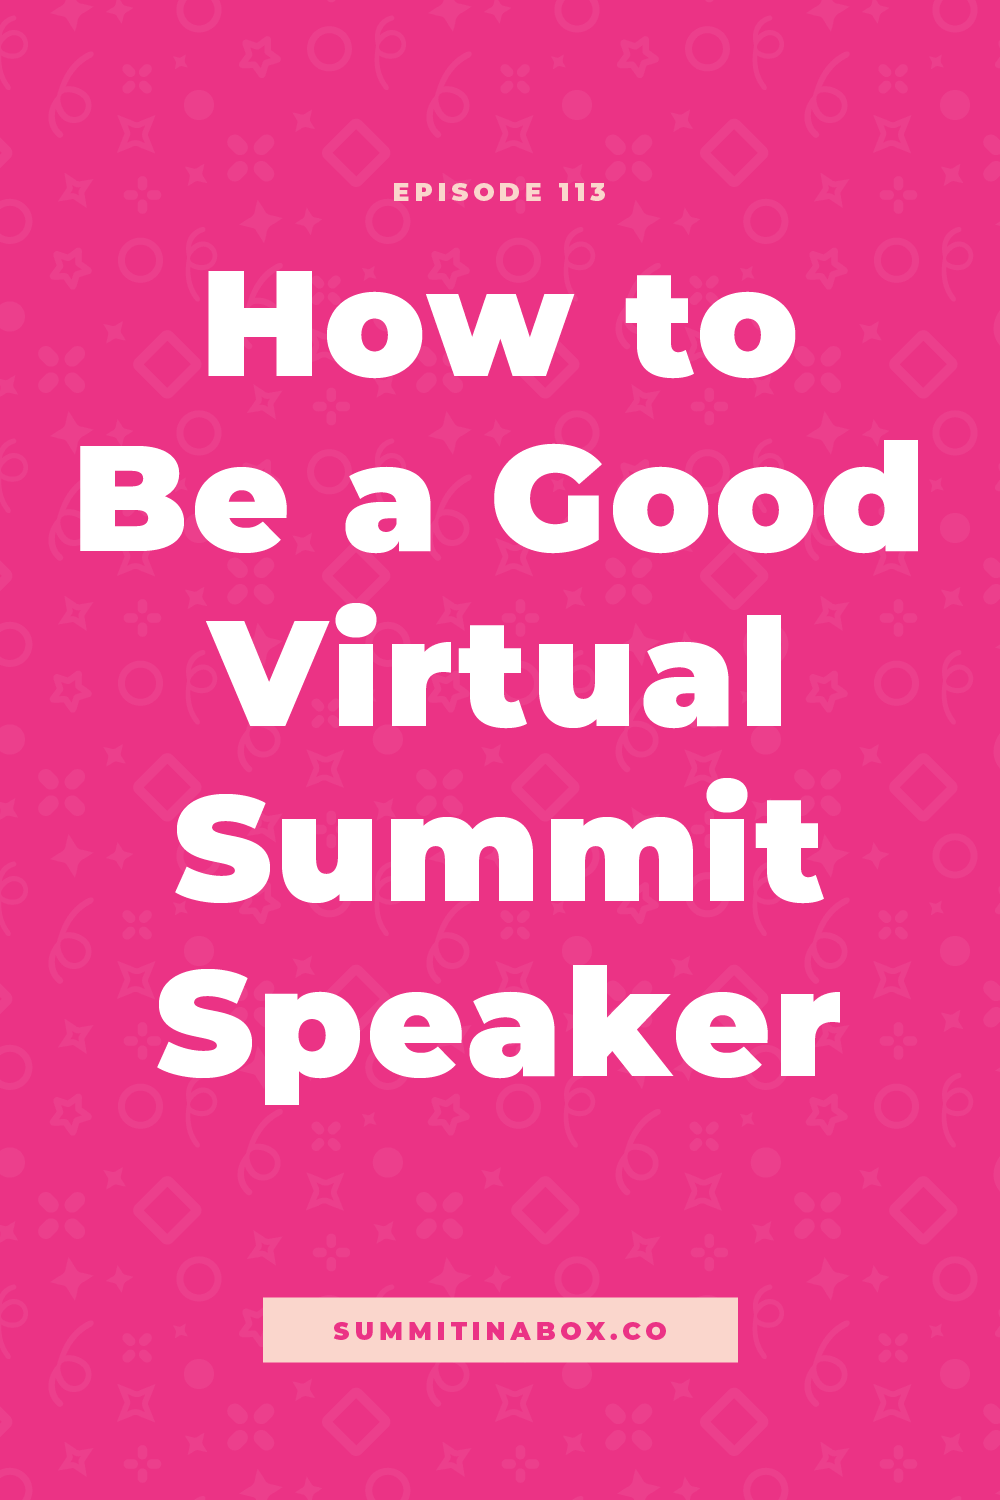 Adding speaking to your visibility plan? Here's what to avoid as a summit speaker, what summit hosts really want, and how to make the process easy on yourself.